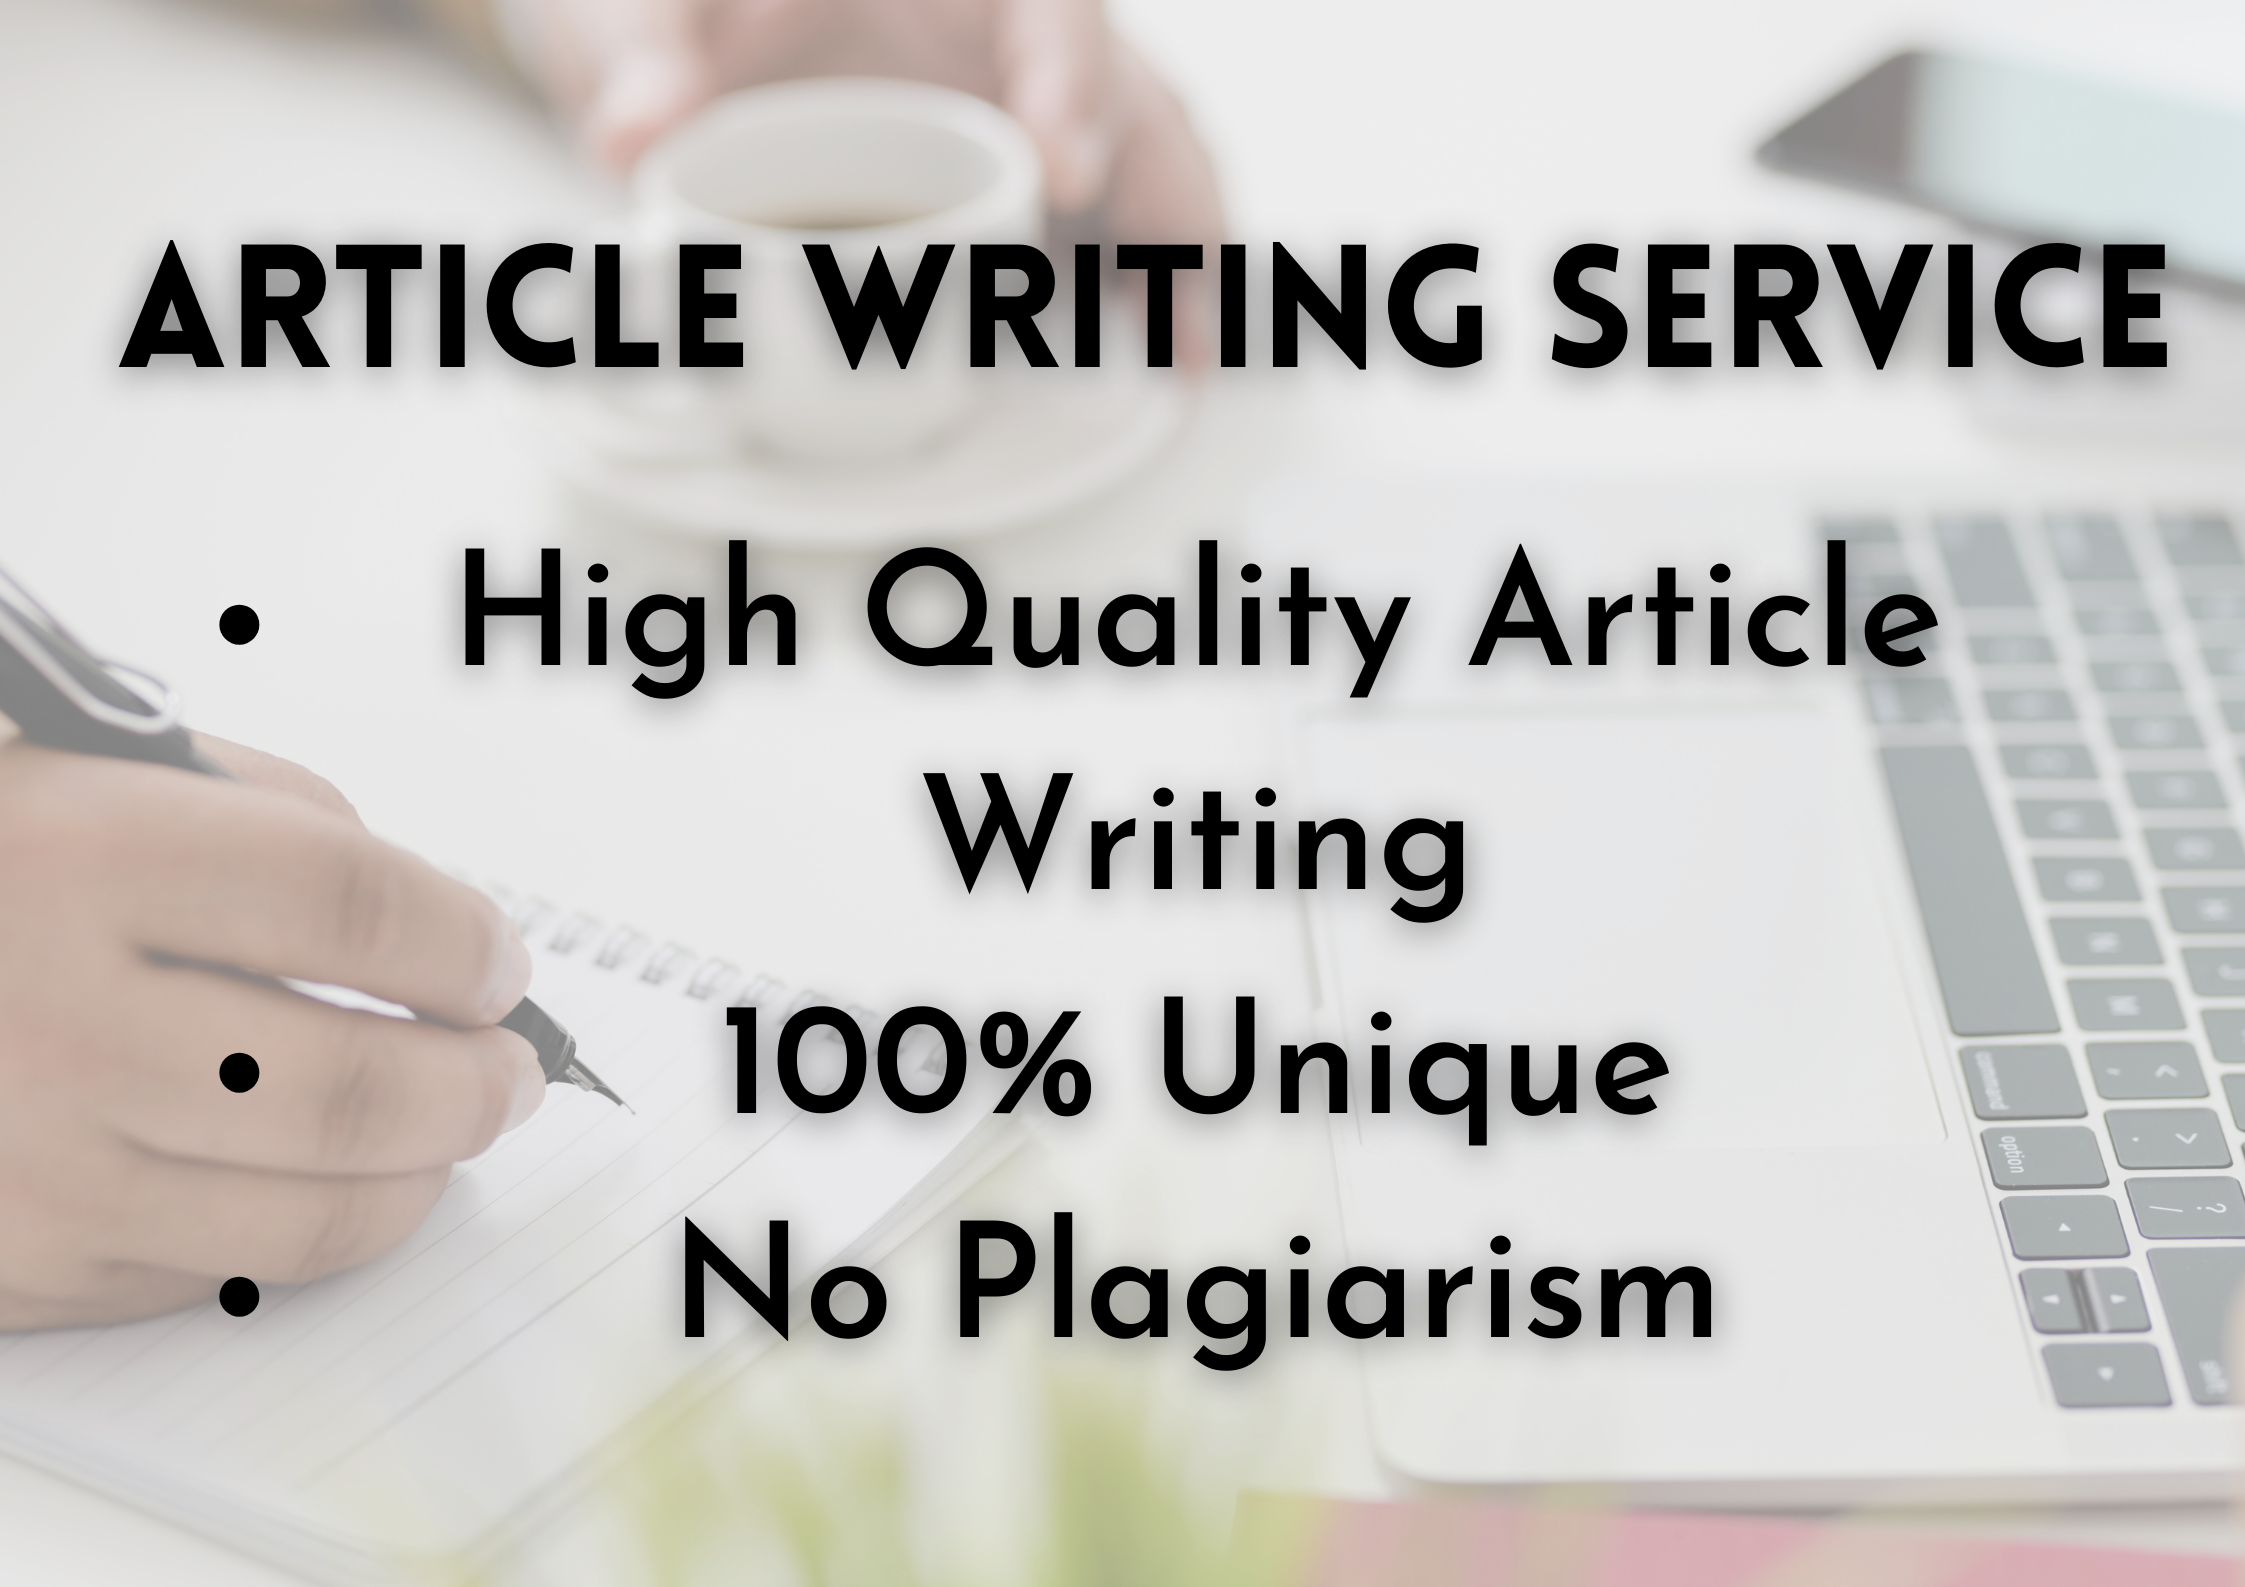 I will write 500 words high quality and unique article writing based on your requirements.